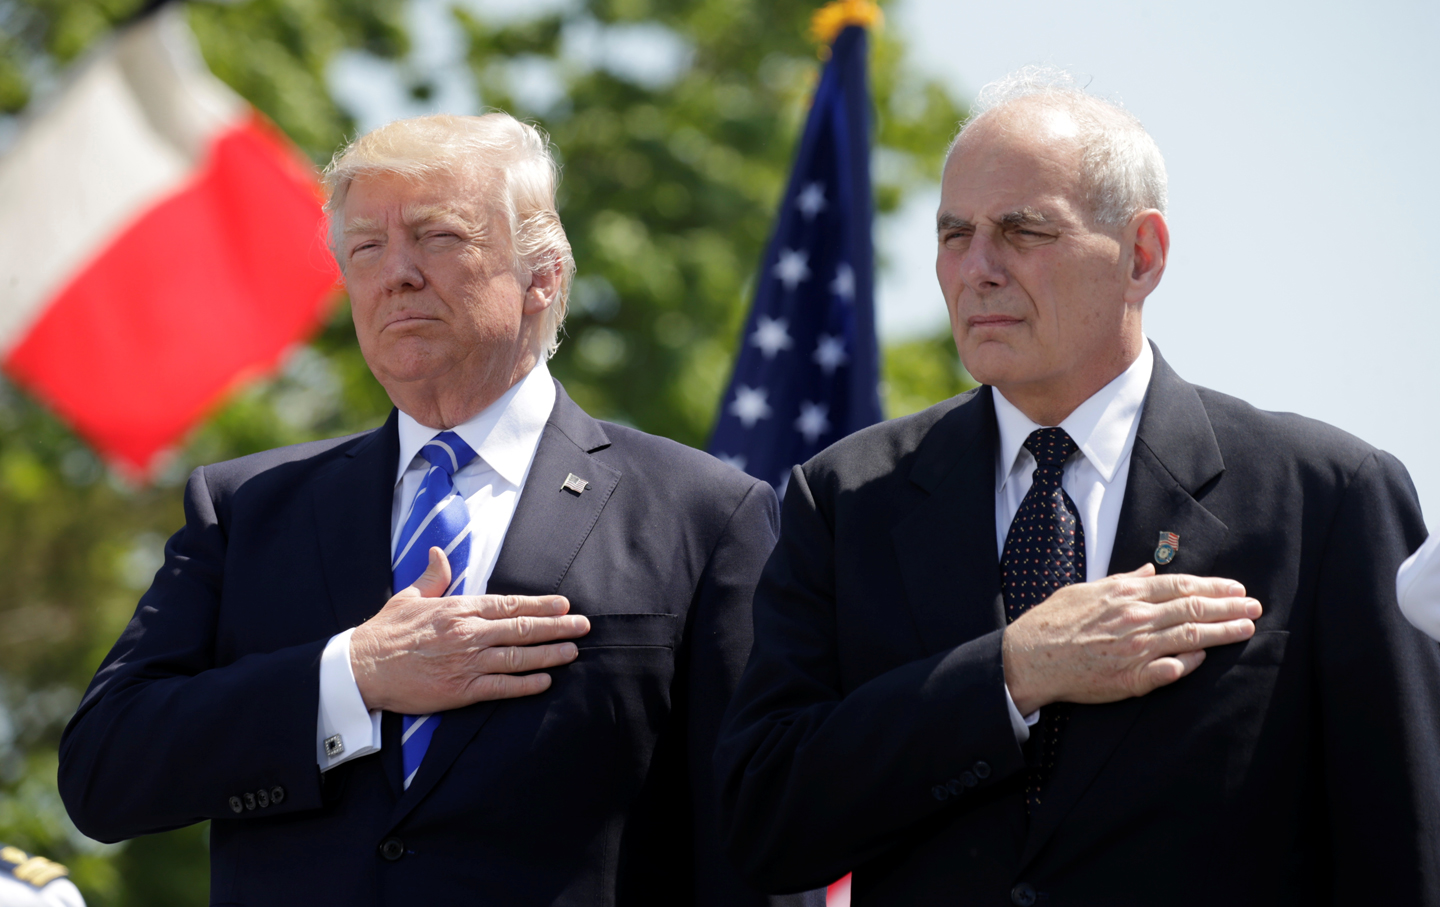 John Kelly and Donald Trump